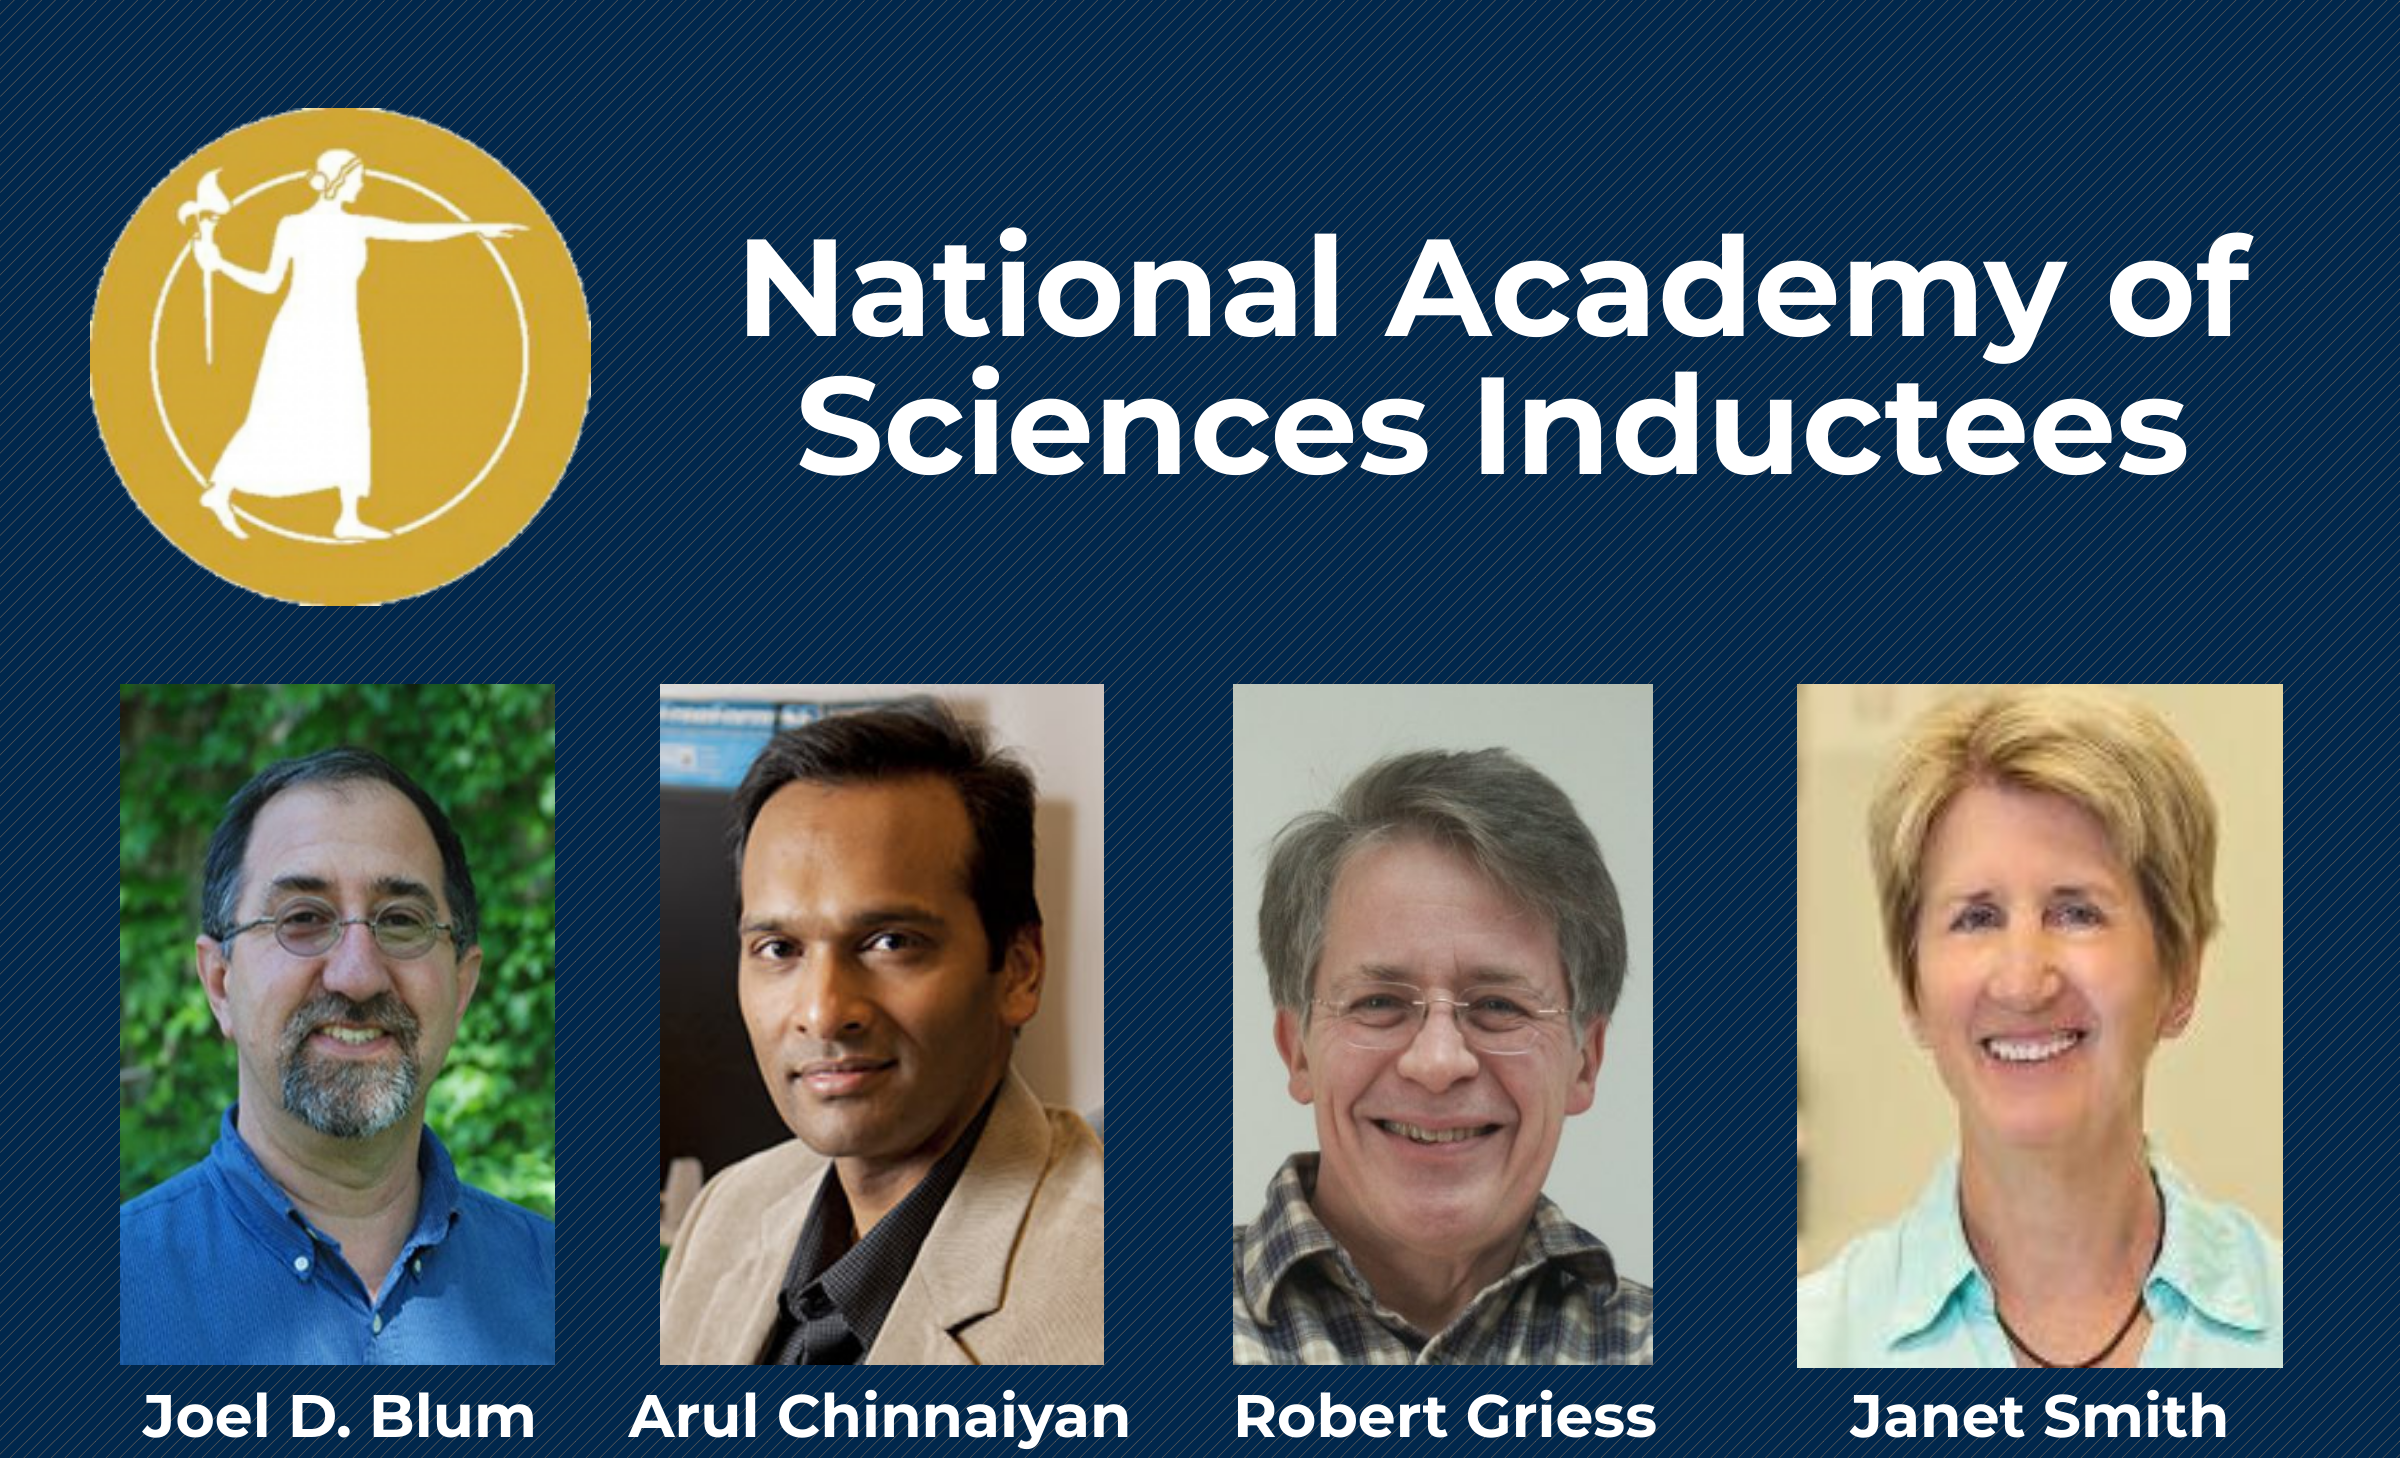 National Academy of Sciences Inductees